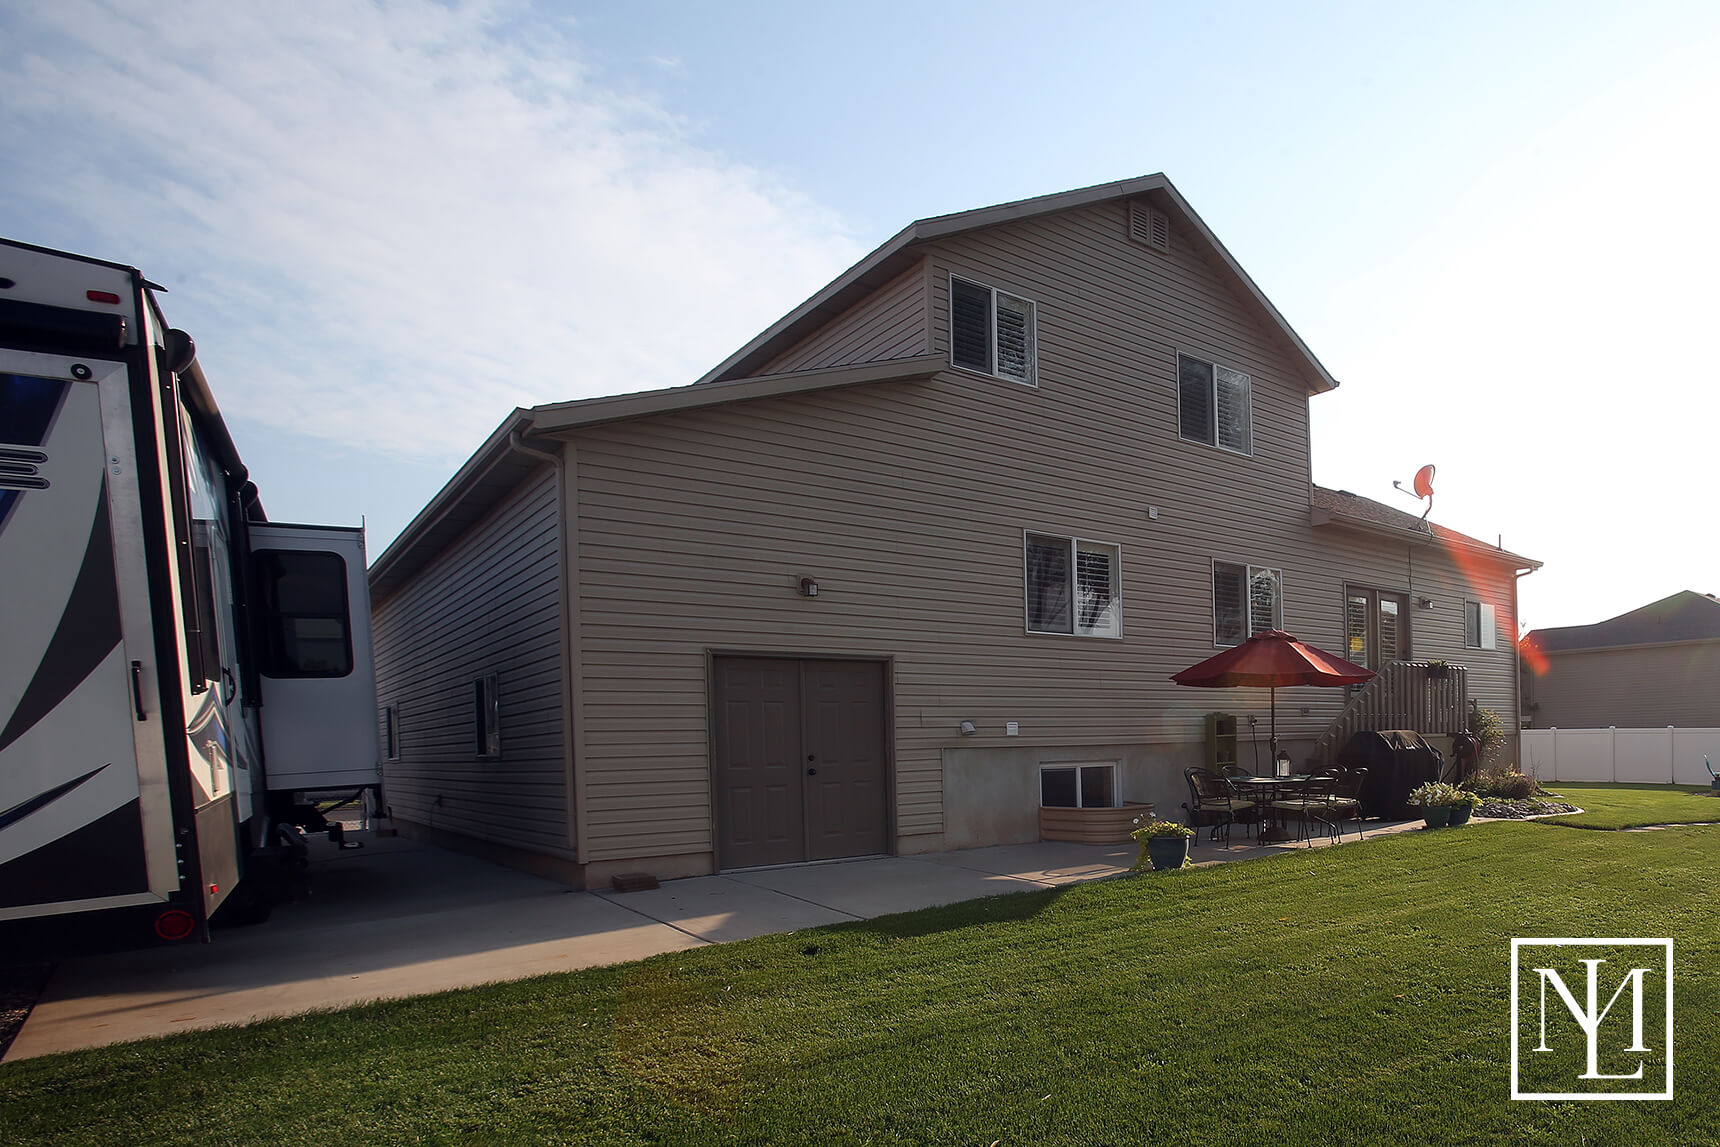 4692 W 250 N West Point Ut 84015 31